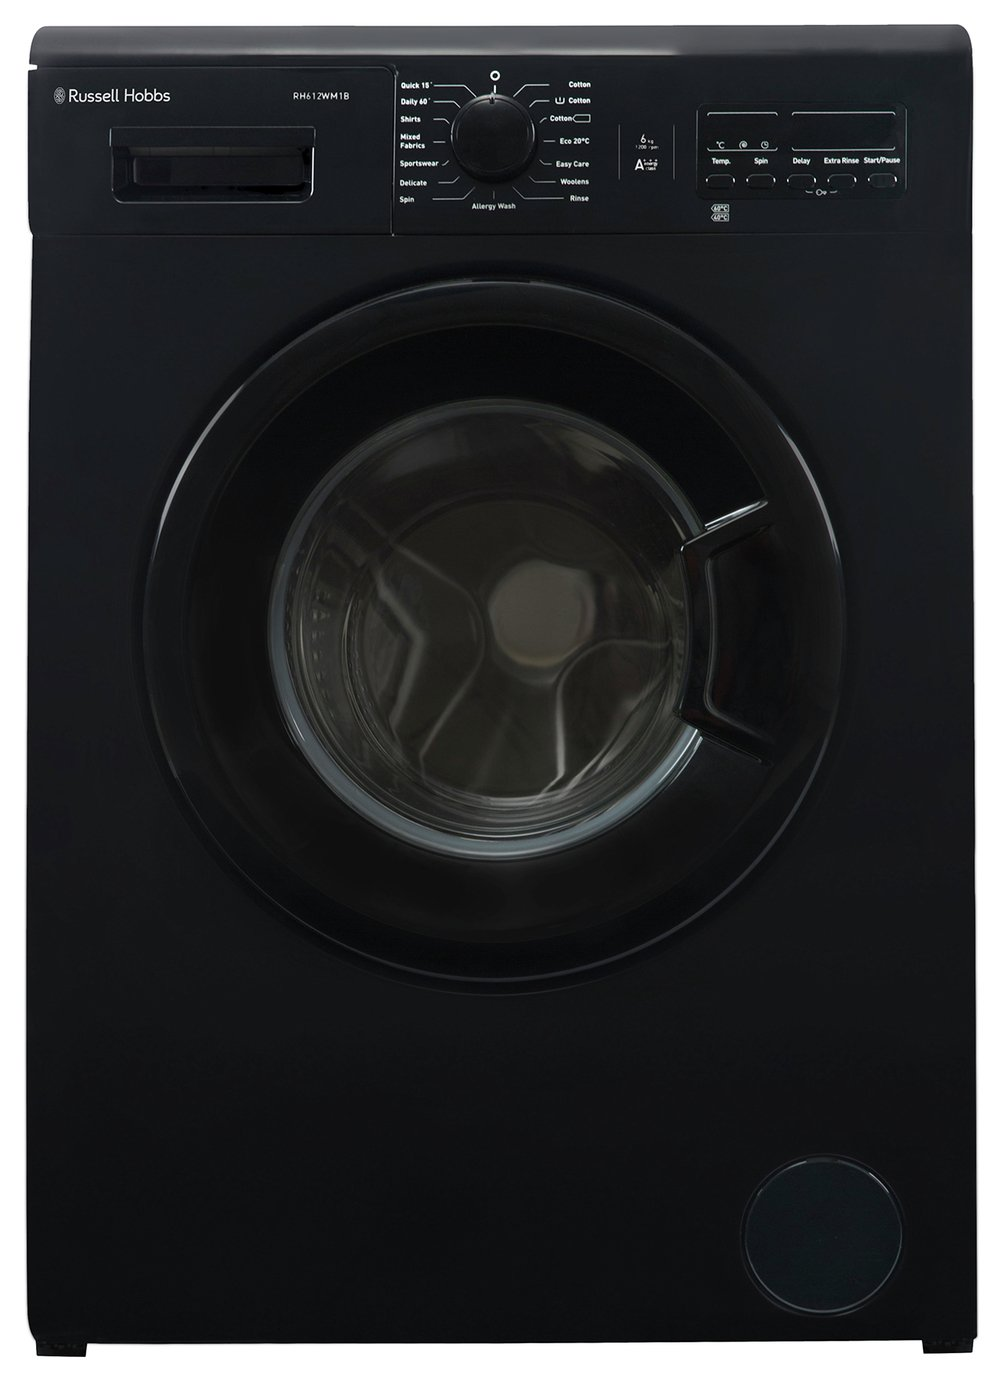 Russell Hobbs 6KG 1200 Spin Washing Machine - Black